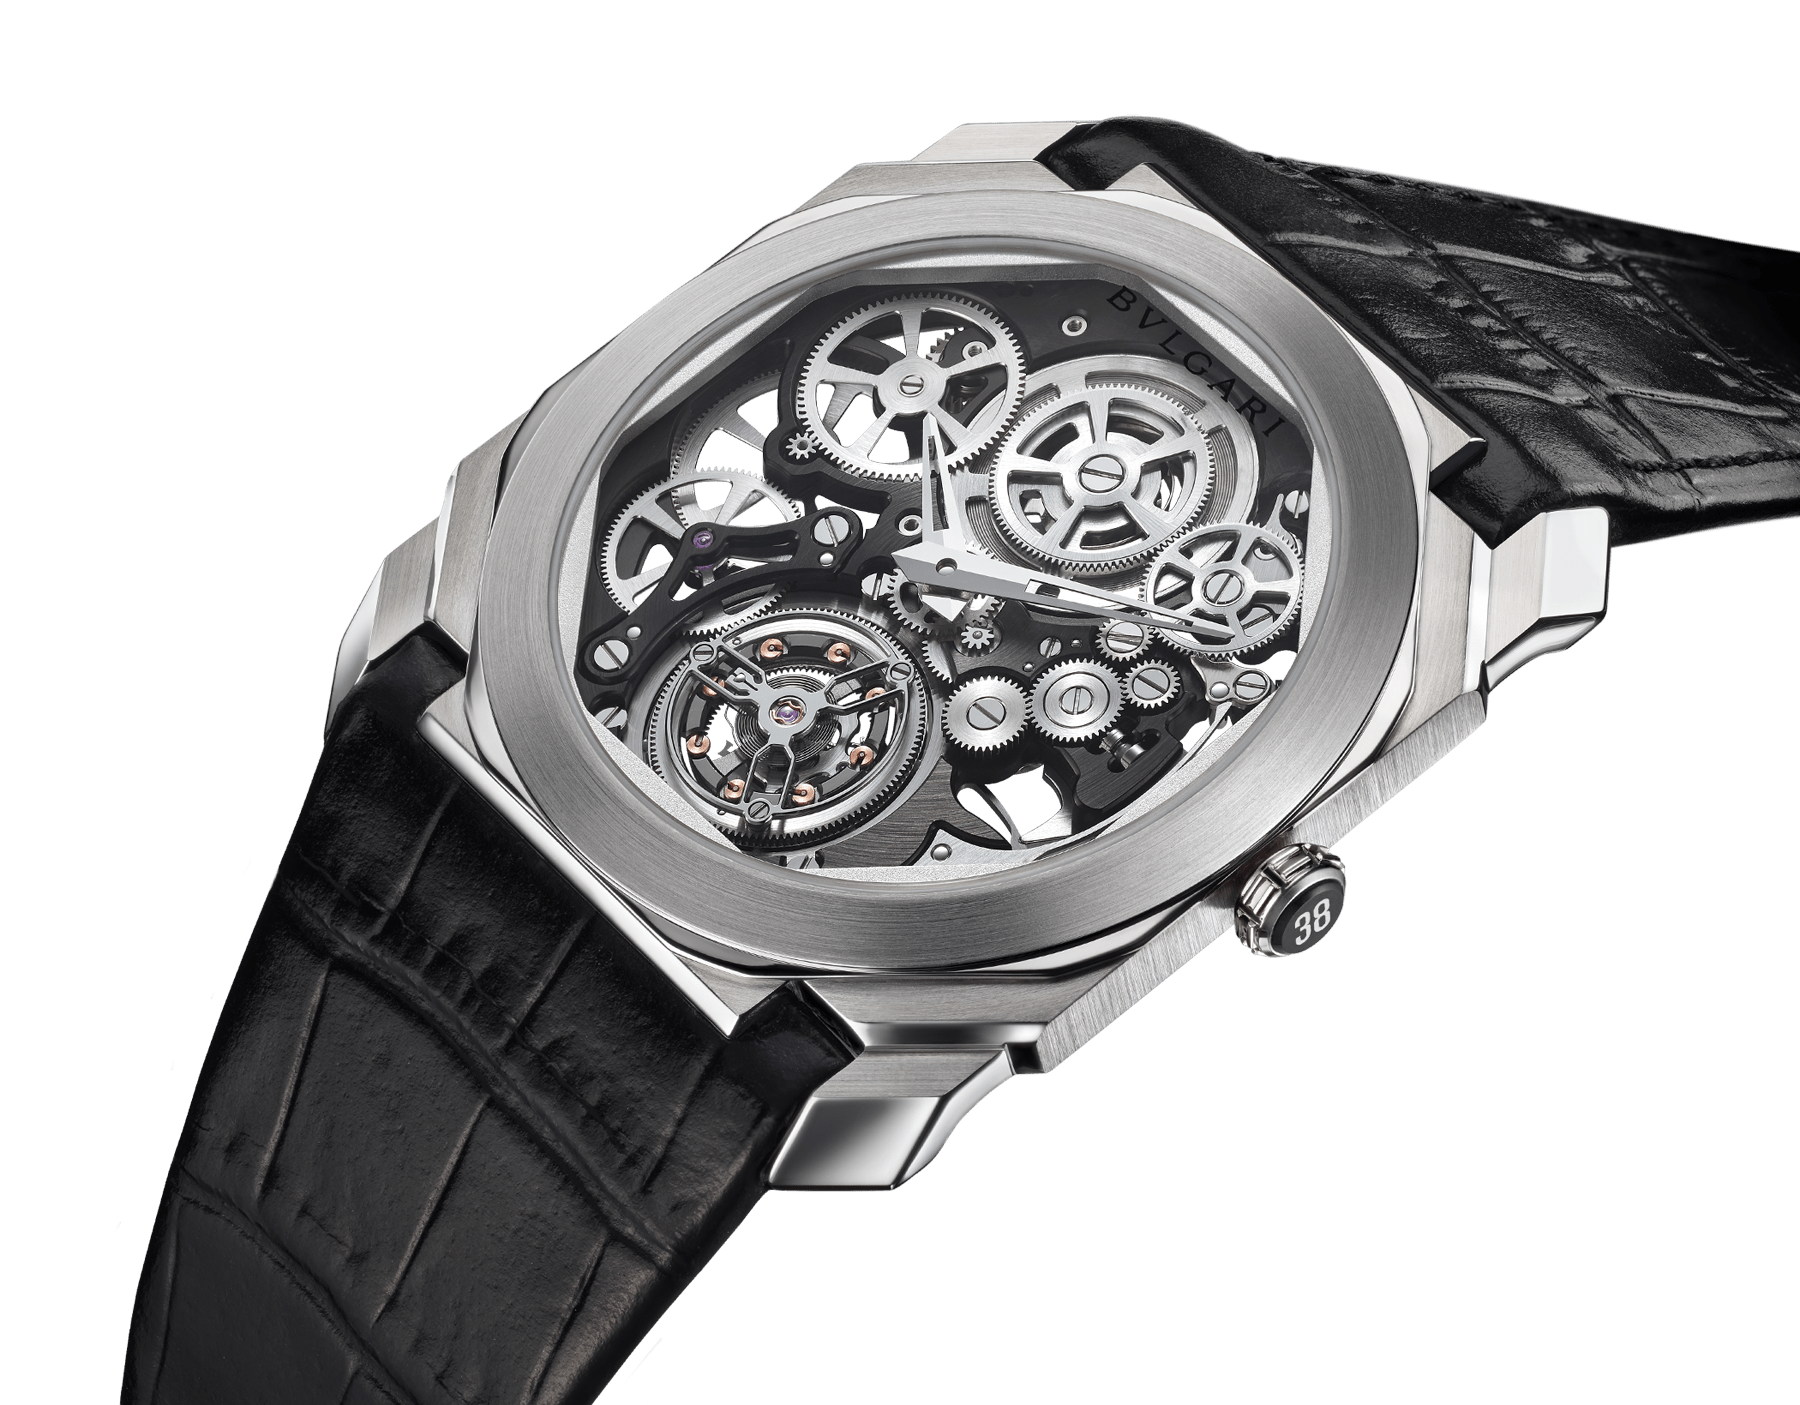 Octo Finissimo Tourbillon Squelette watch with ultra-thin mechanical skeleton movement, manual winding and ball-bearings system, platinum case, transparent dial and black alligator bracelet. 102719 image 2